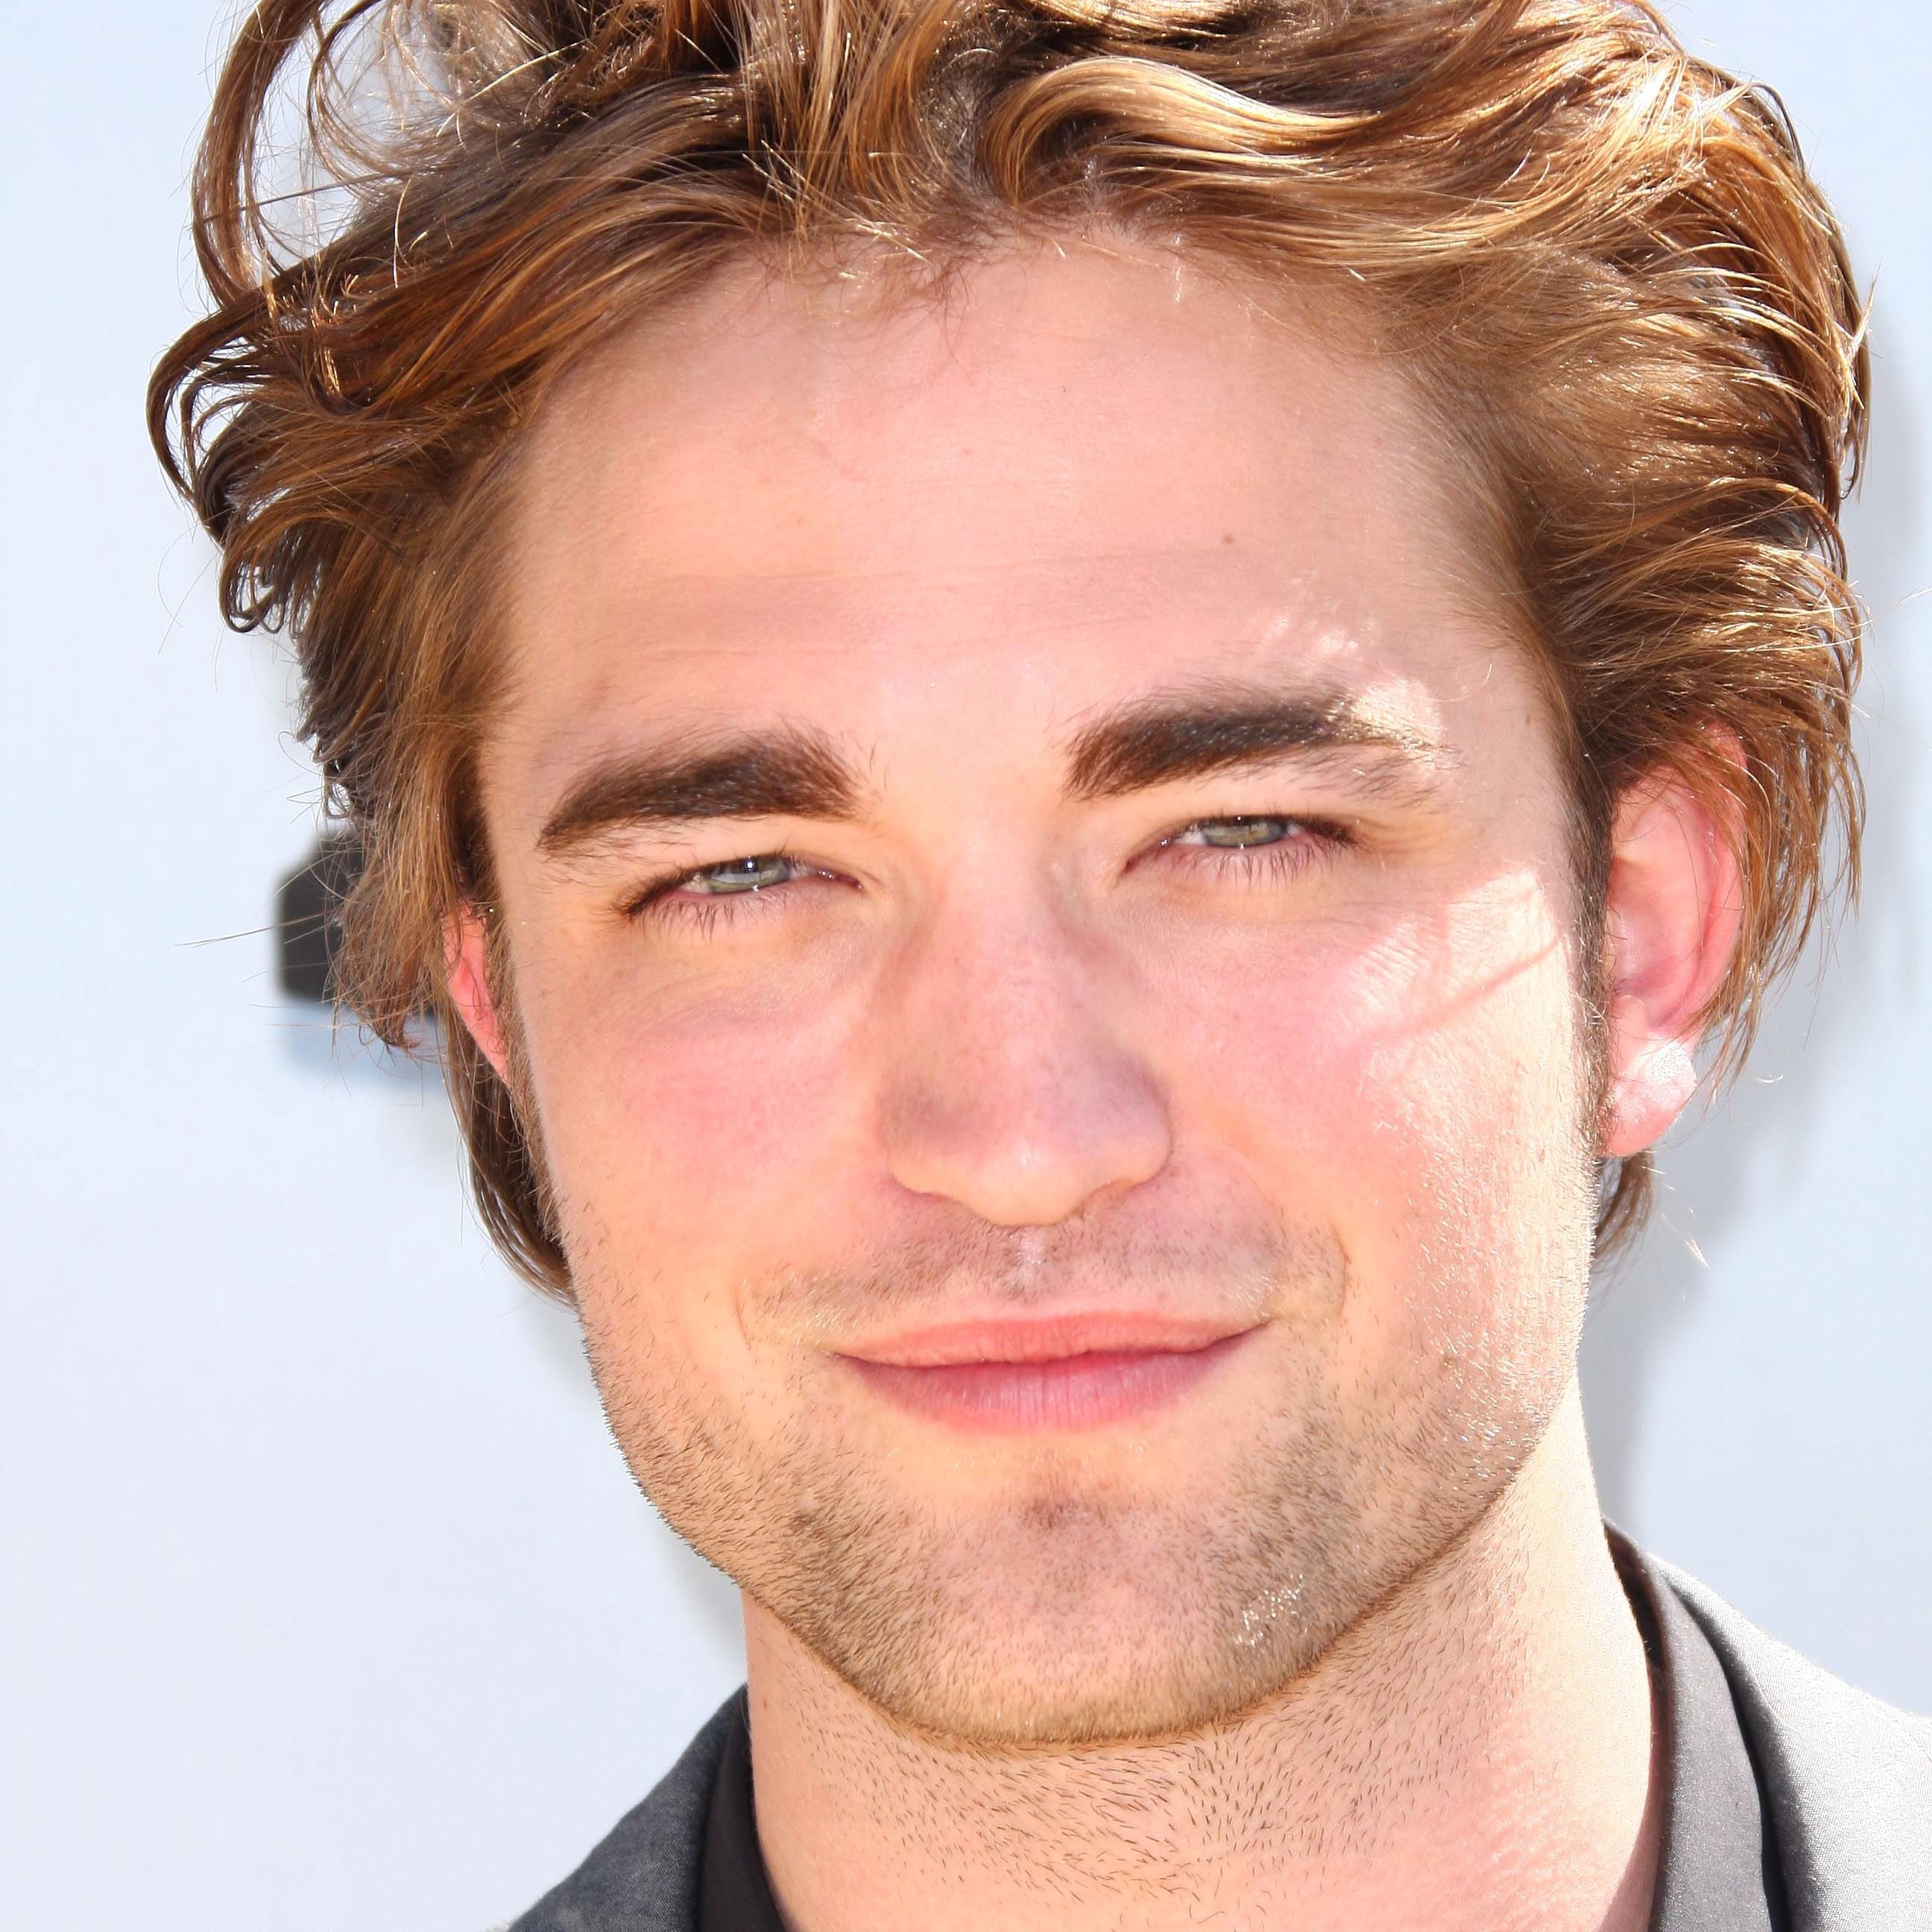 Robert Pattinson HQ wallpapers